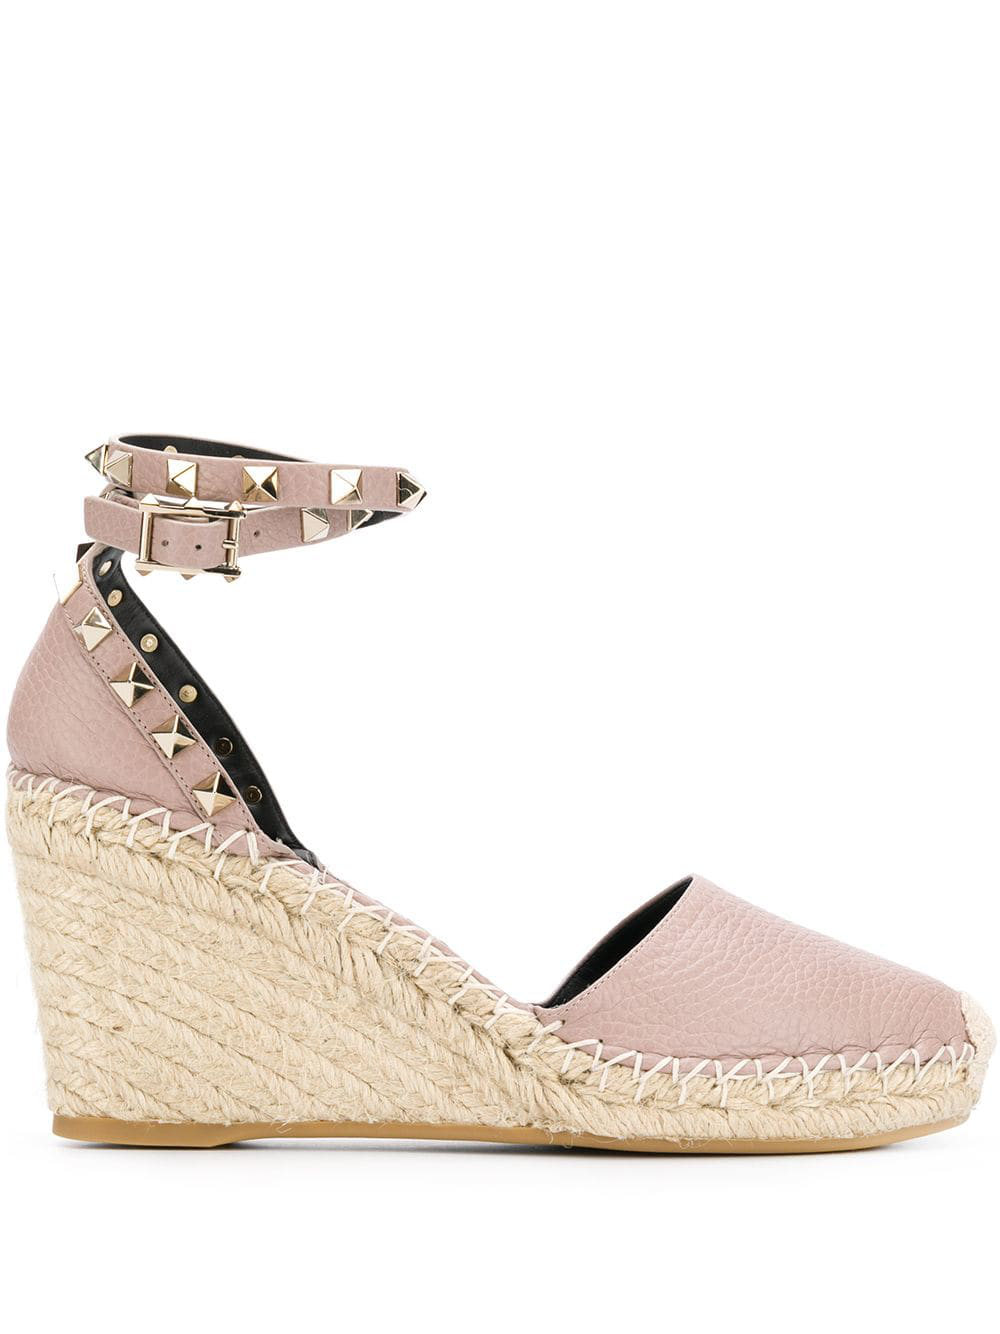 440cb48fc3f Valentino Rockstud Leather Wedge Espadrilles In Ivory